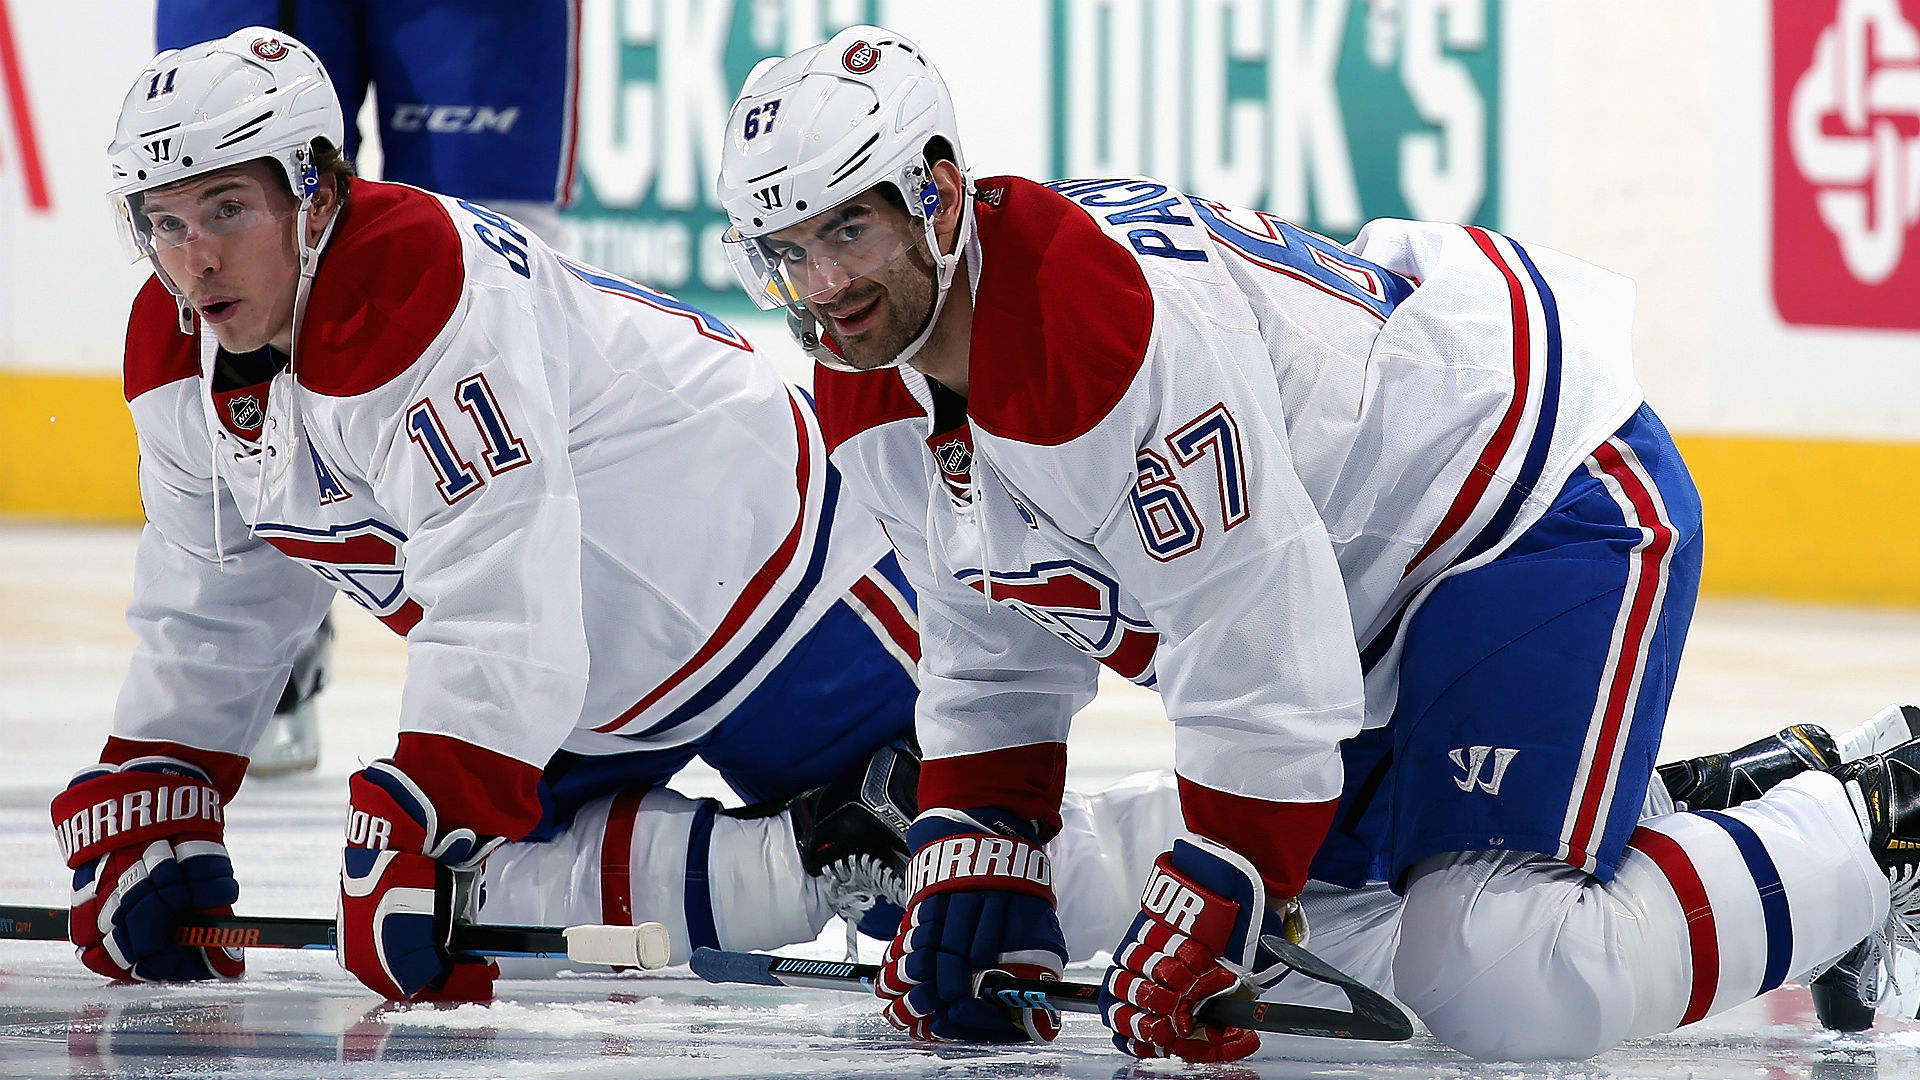 Canadiens' Danault leaves hospital day after taking puck to head